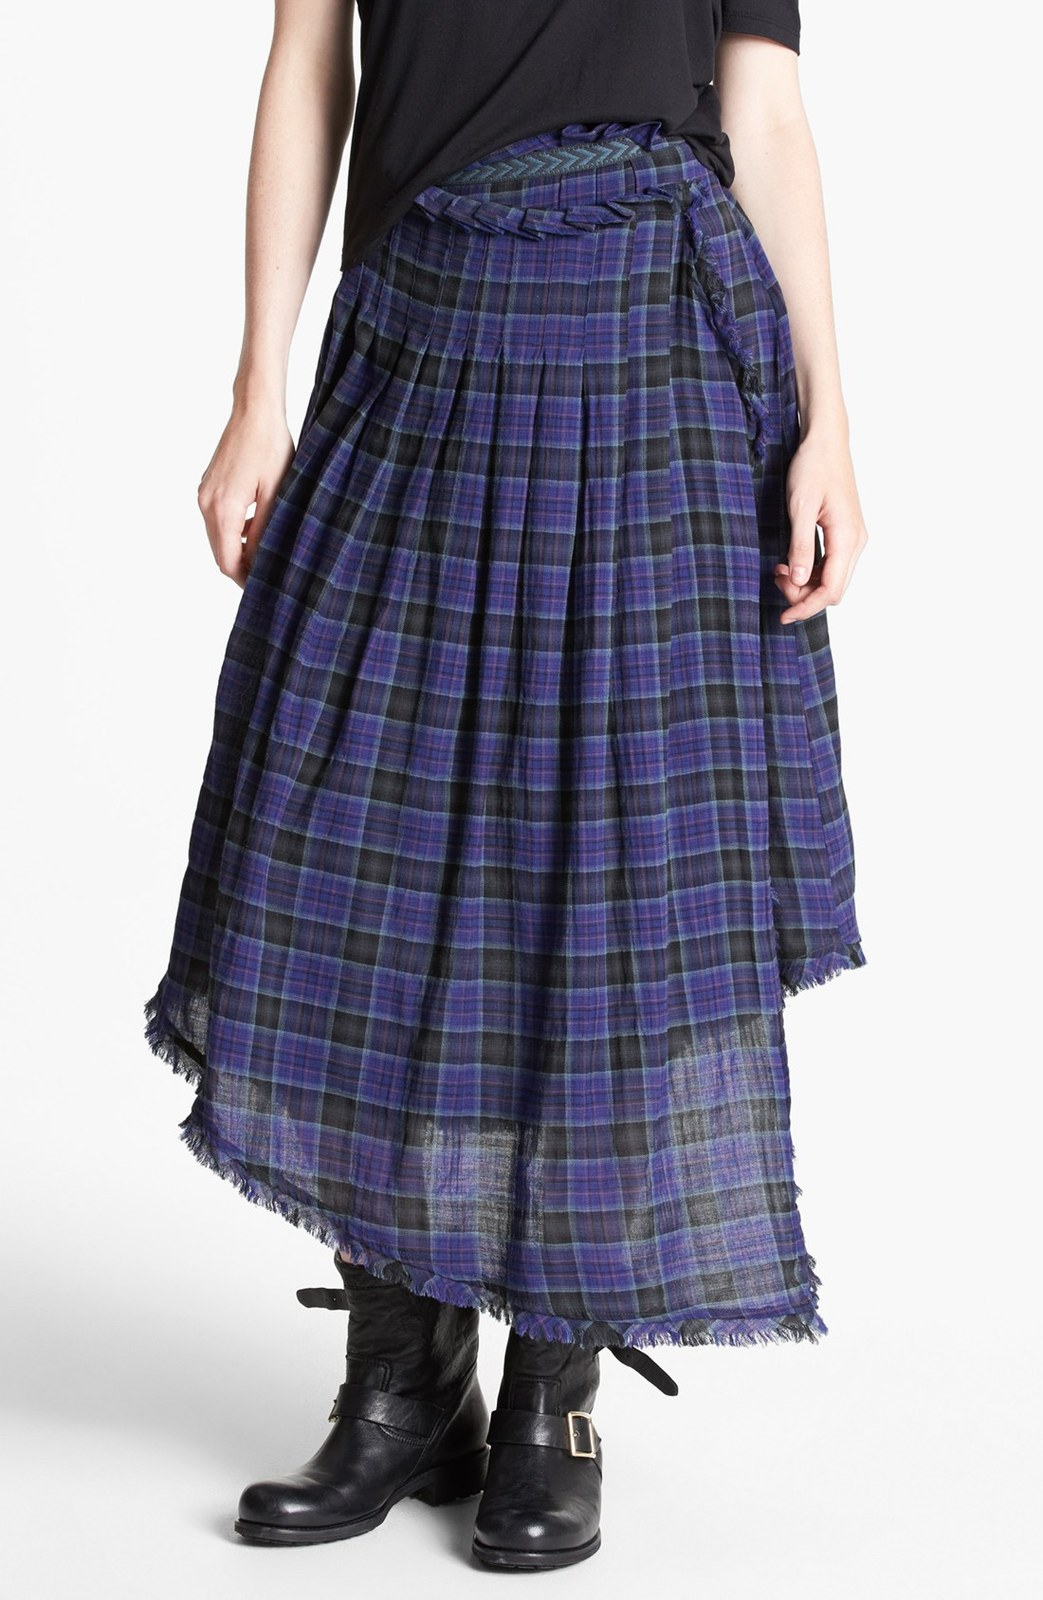 Free People Blue Tartan Plaid Faux Wrap Skirt XS - Skirts